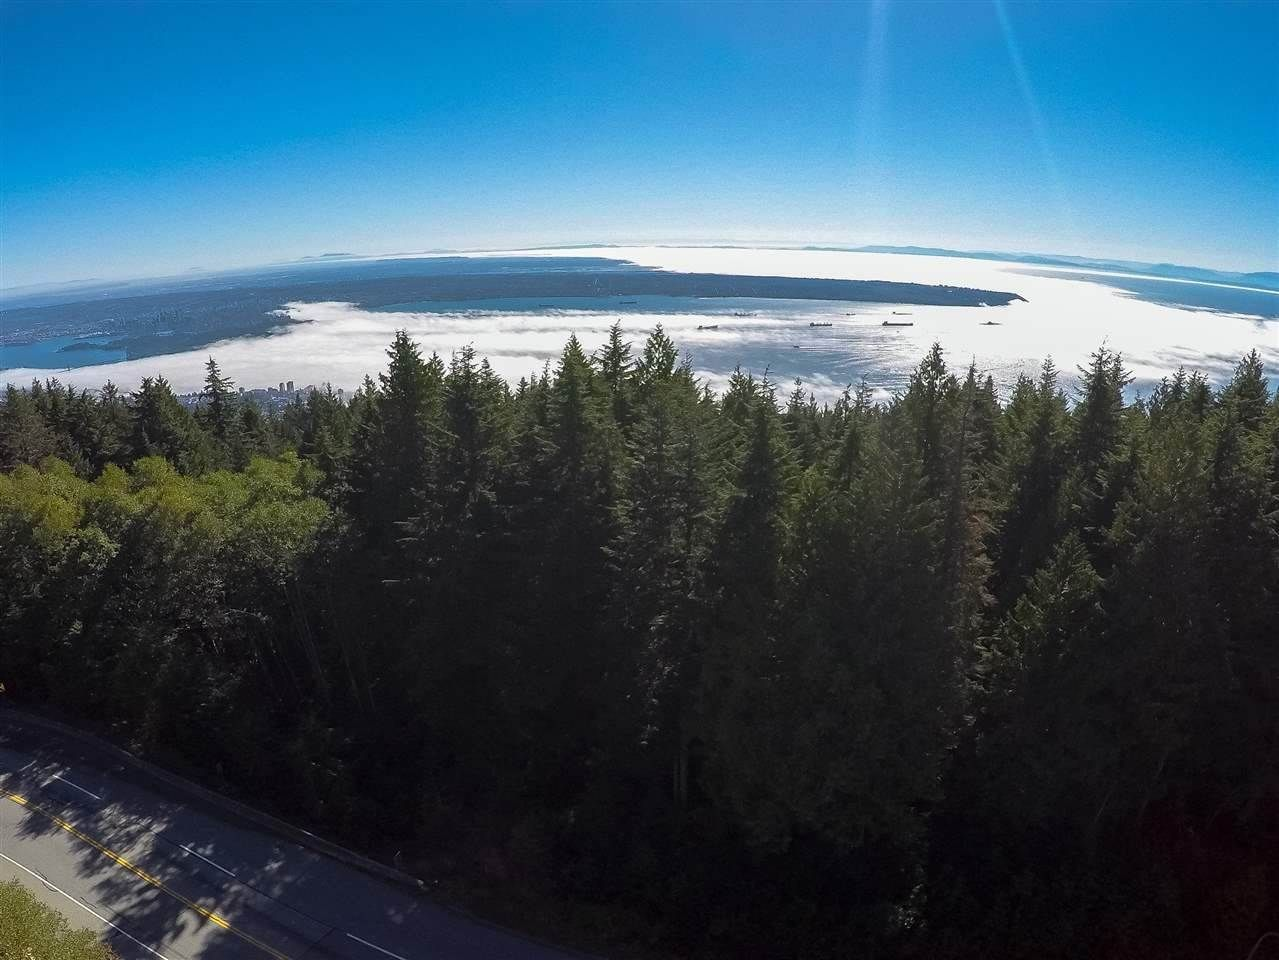 Main Photo: 17 E HOLLYBURN Ridge in West Vancouver: Cypress Land for sale : MLS®# R2532513